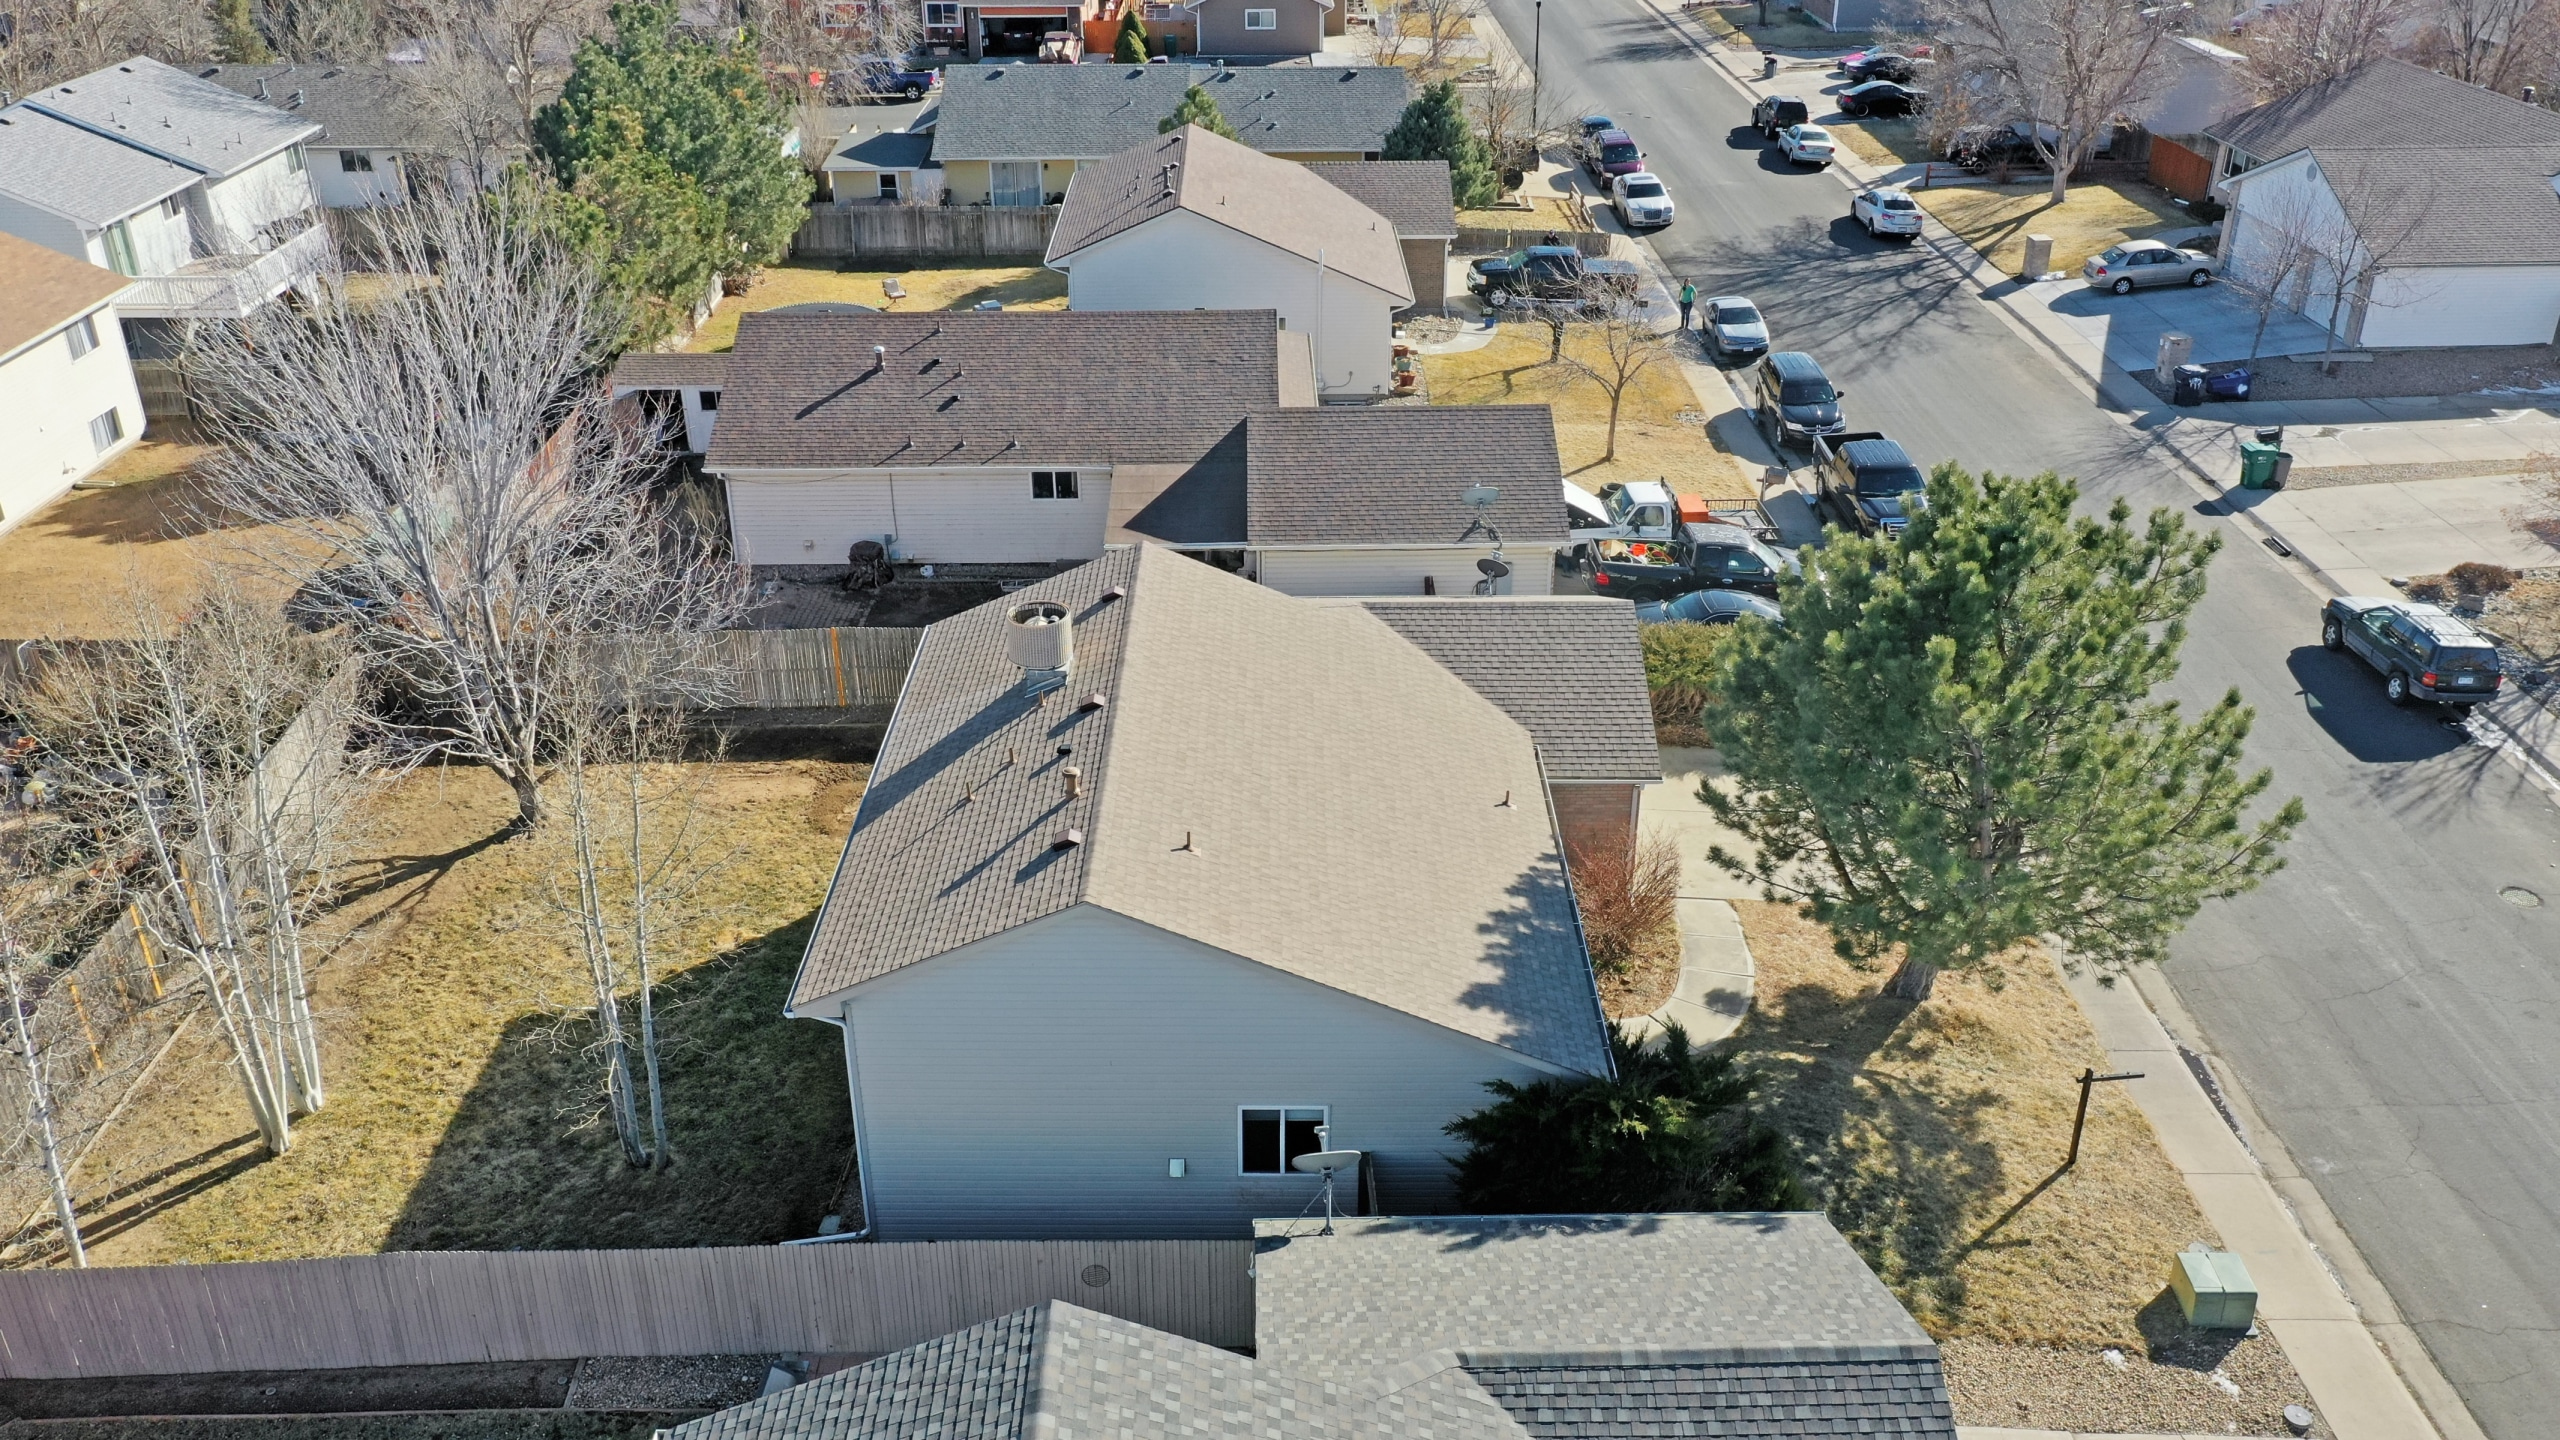 Brighton, CO house for sale aerial view of house and back yard with big trees